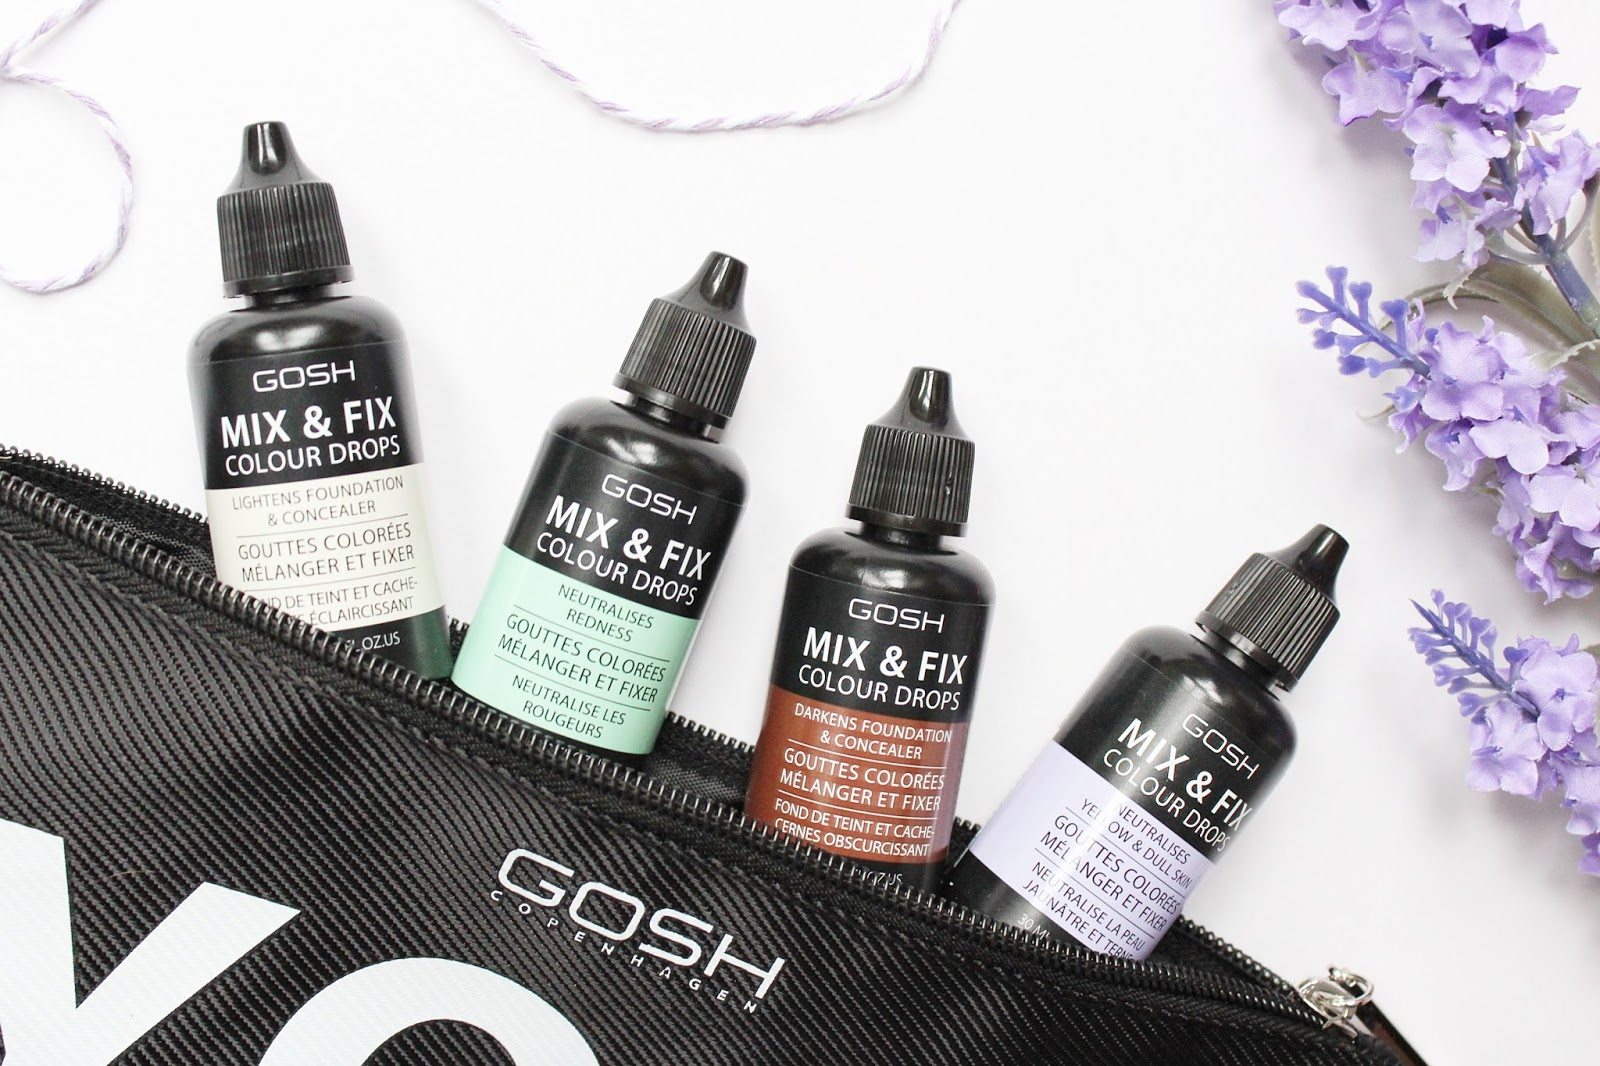 GOSH Mix & Fix Colour Drops